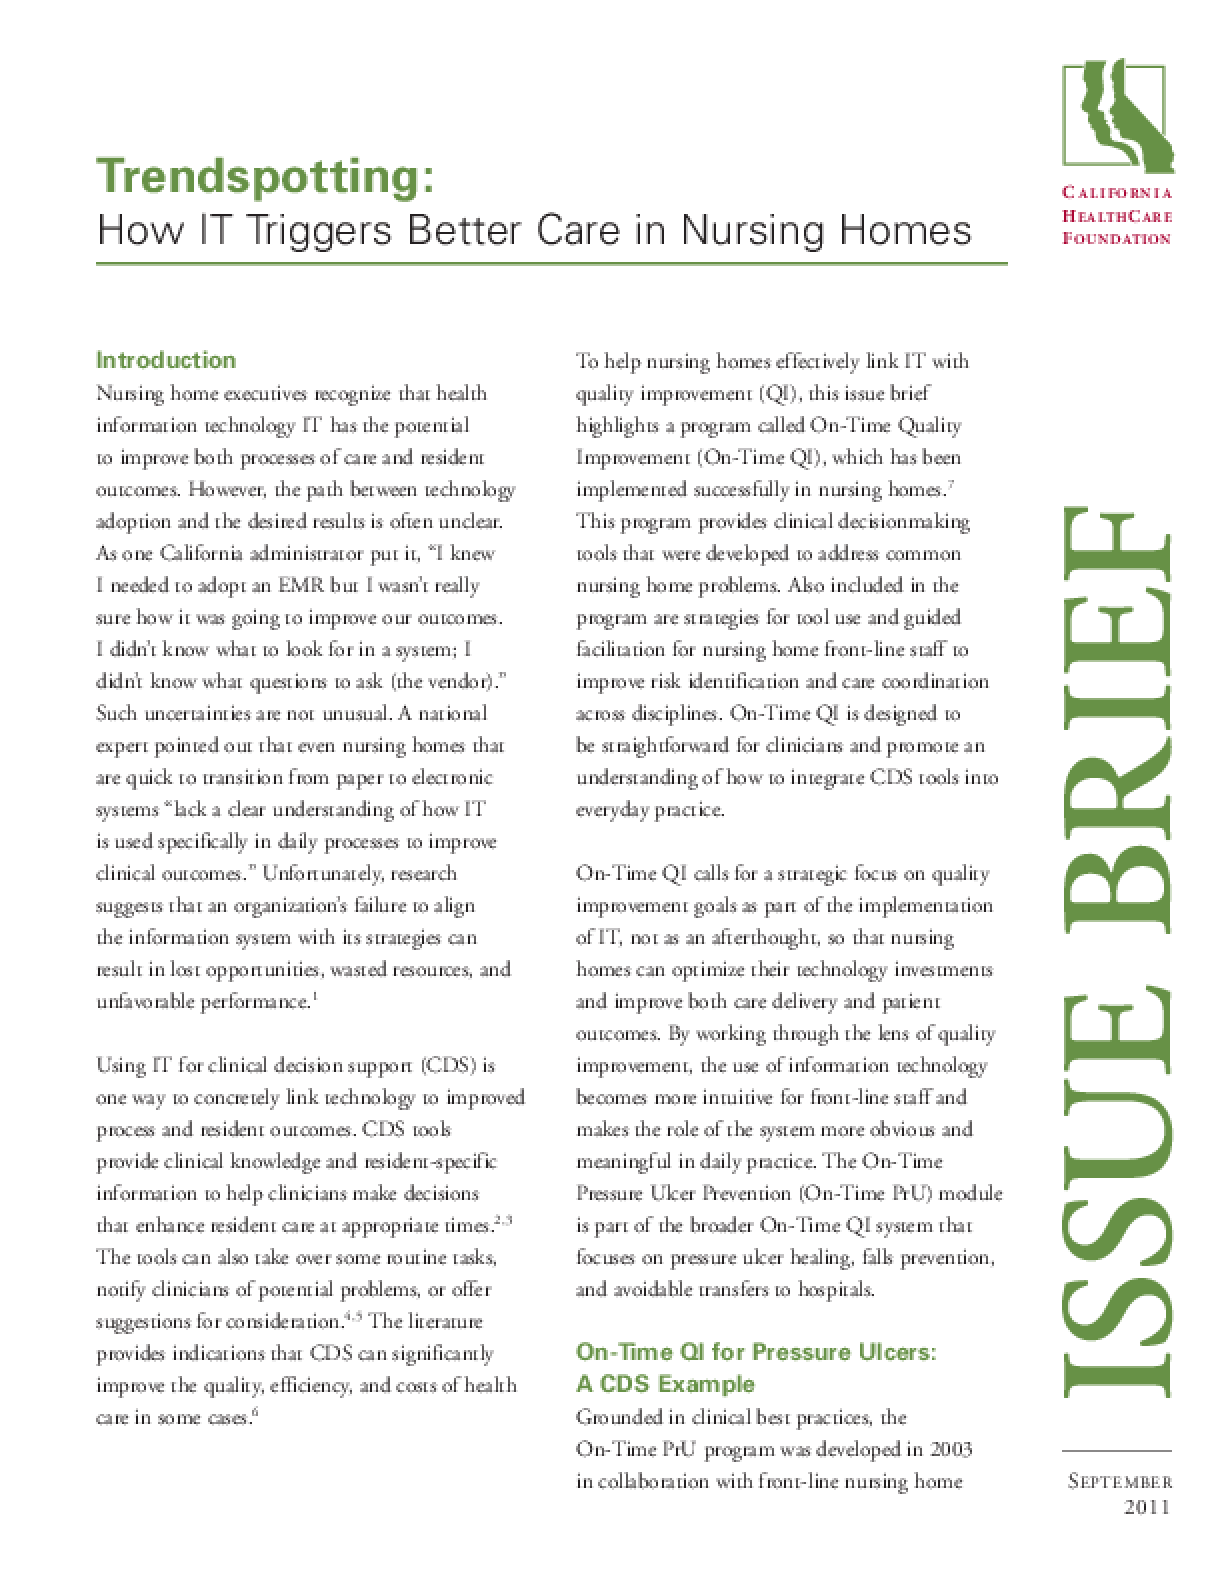 How IT Triggers Better Care in Nursing Homes